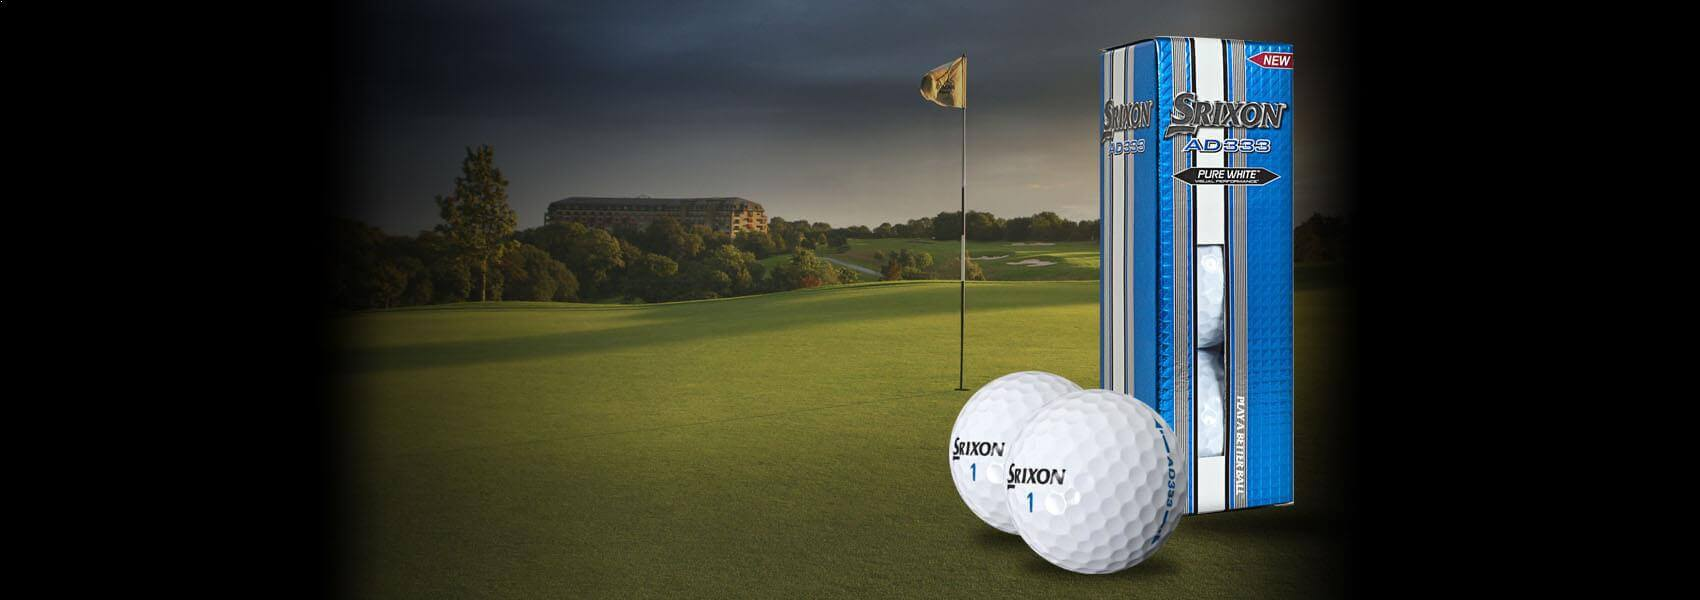 5 free rounds of golf, 5 greenfree 2 for 1 vouchers, three complimentary golf balls when you join by driect debt